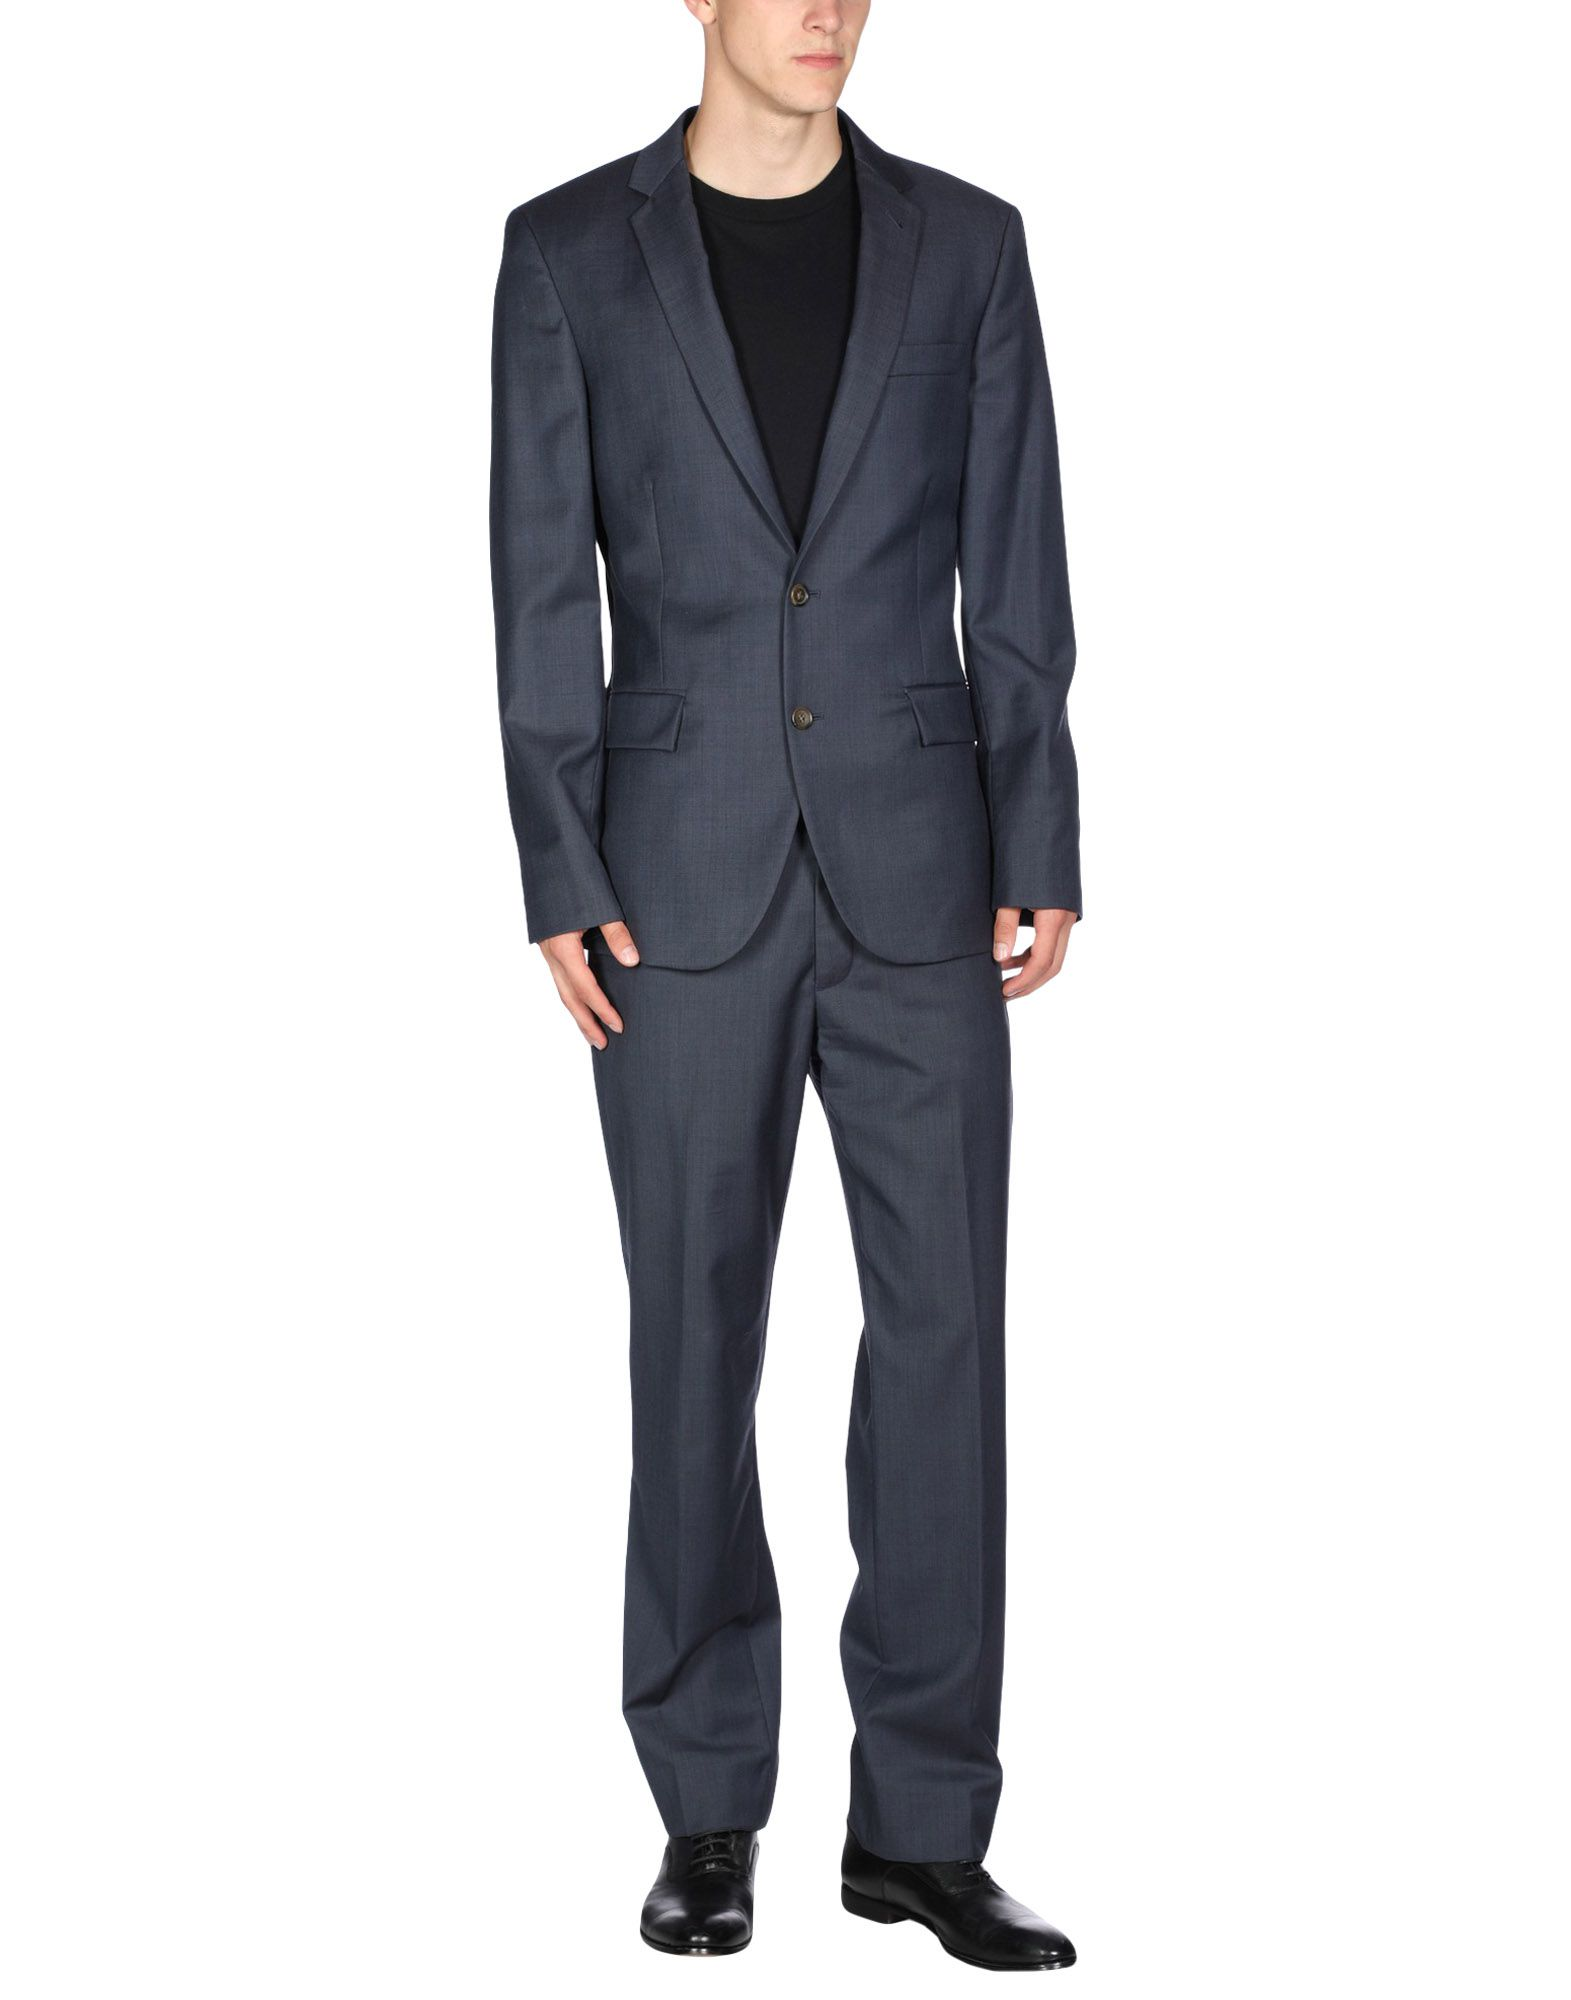 J.CREW Suits. crepe, multipockets, single-breasted, fully lined, basic solid color, lapel collar, long sleeves, no appliqués, button, zip, single chest pocket, mid rise, tuxedo. 100% Wool